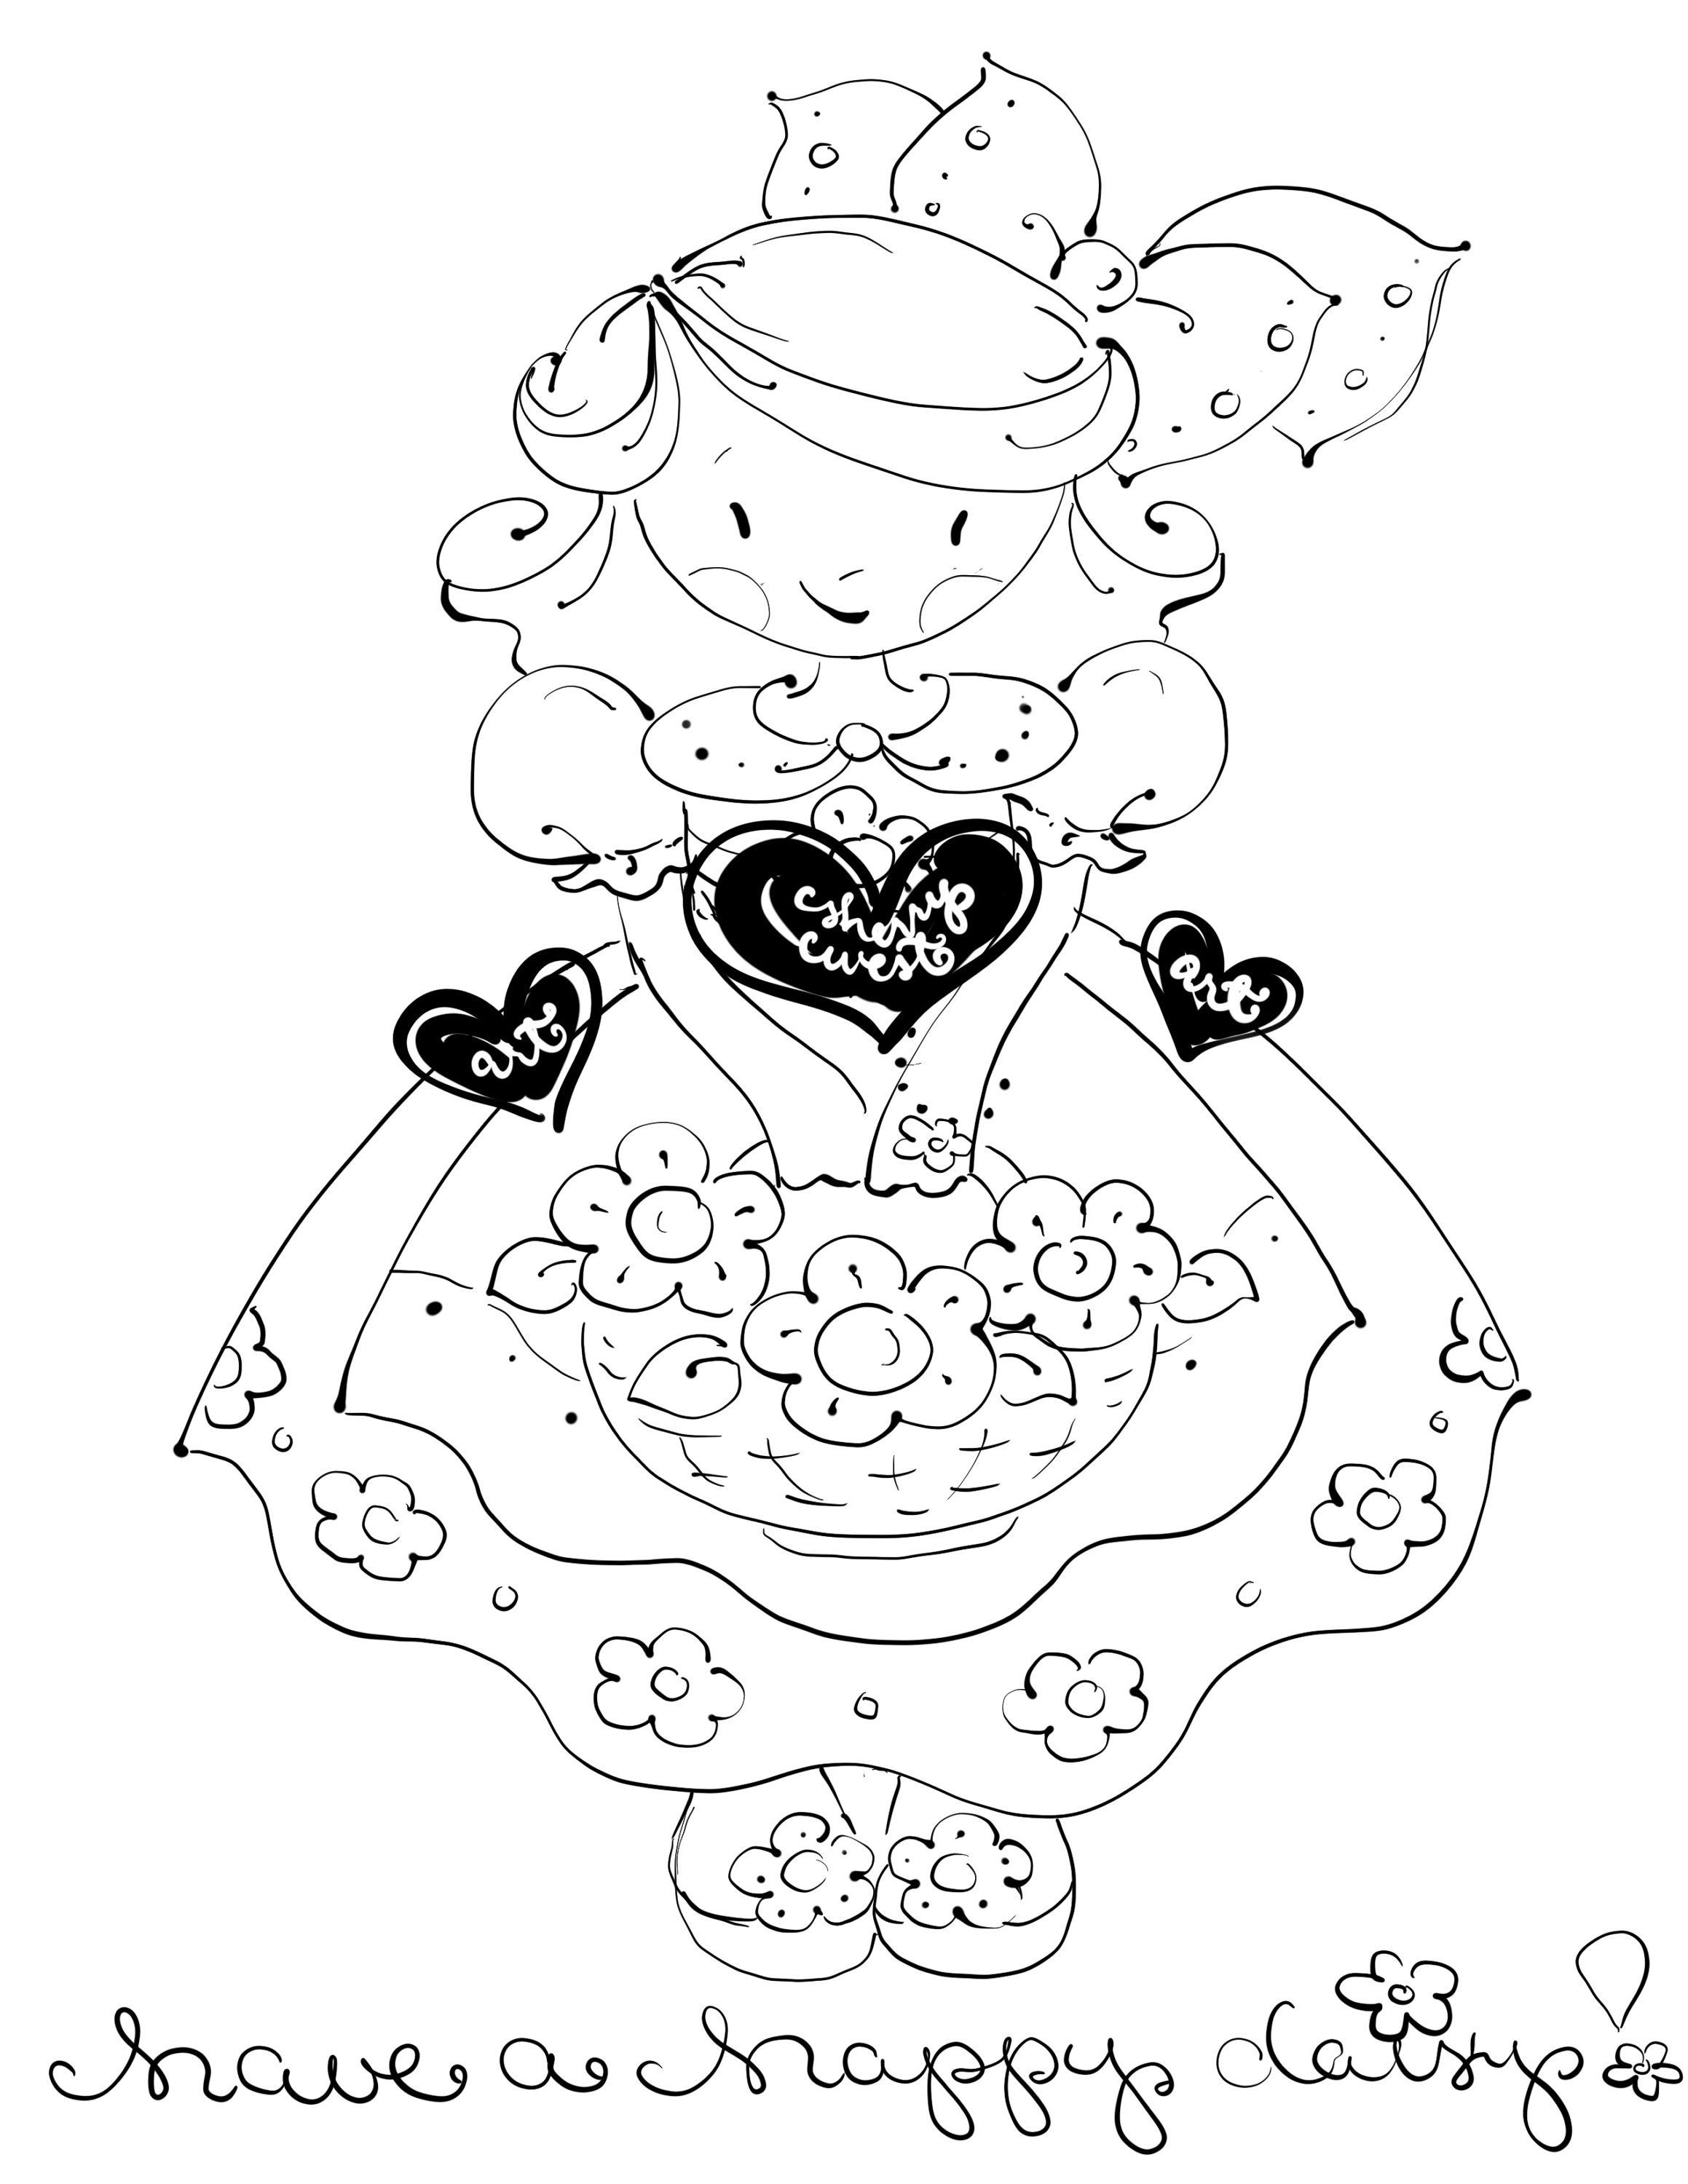 happy friendship day coloring pages have a happy daisy encouragement spring summer girl day friendship happy coloring pages